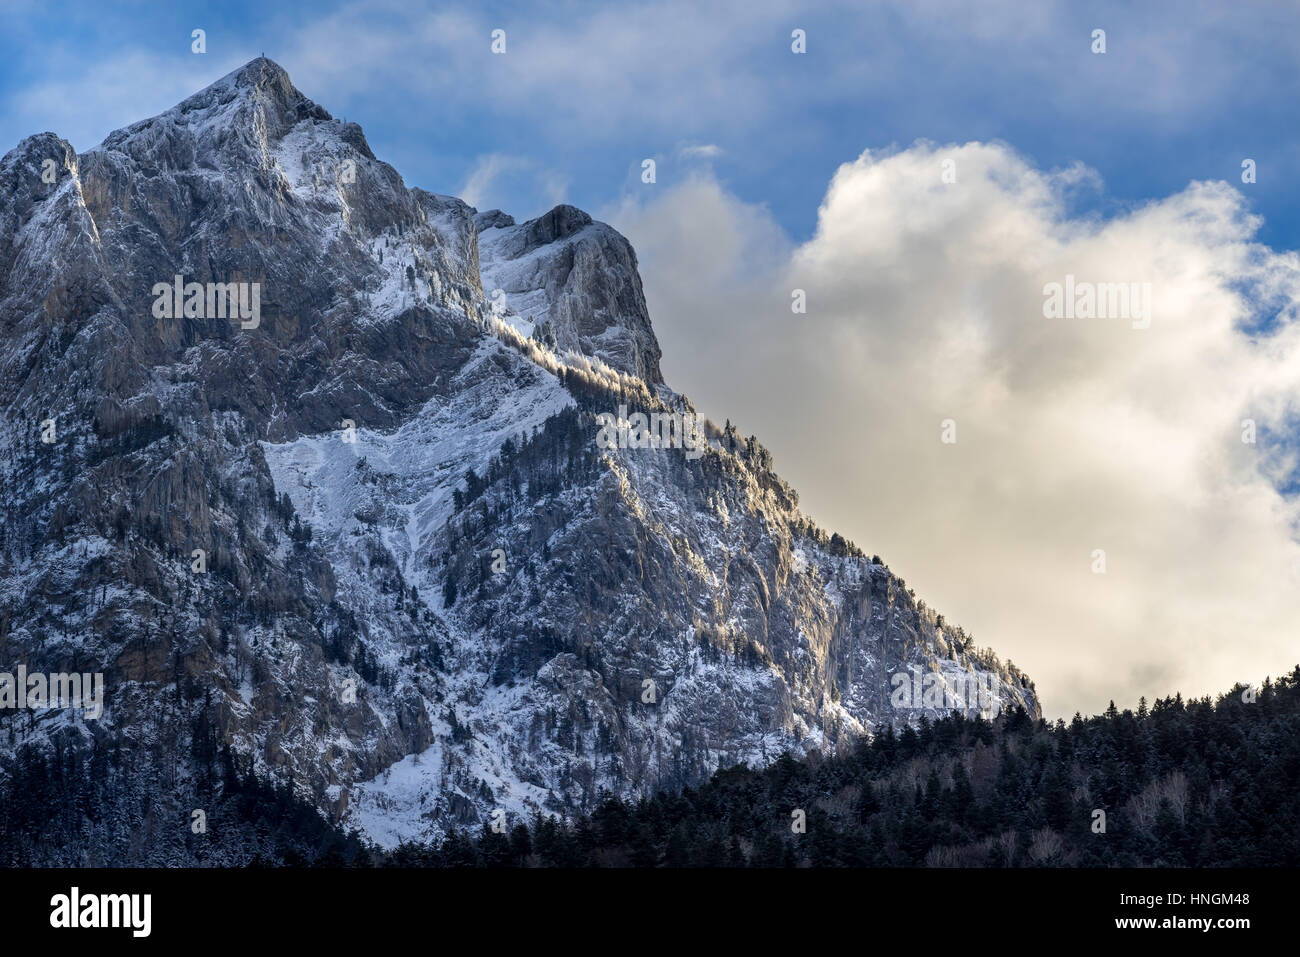 North face of the Pic de Morgon (Grand Morgon peak) in winter. Hautes-Alpes, Southern French Alps, France - Stock Image